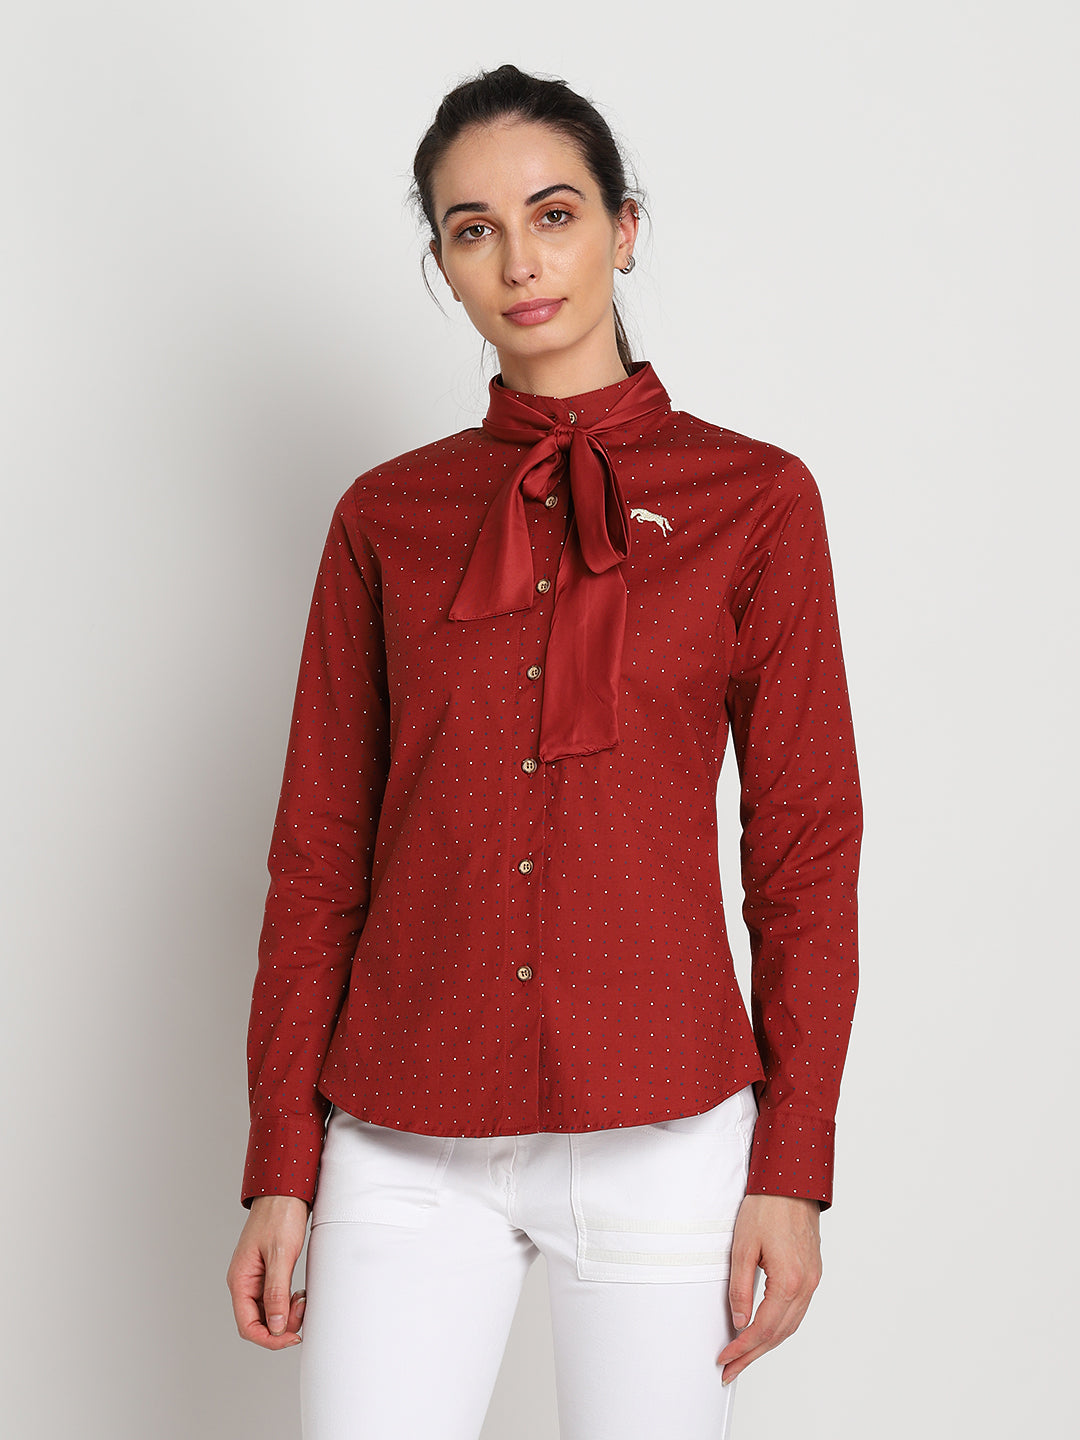 JUMP USA Women Red Self Design Casual Shirt - JUMP USA